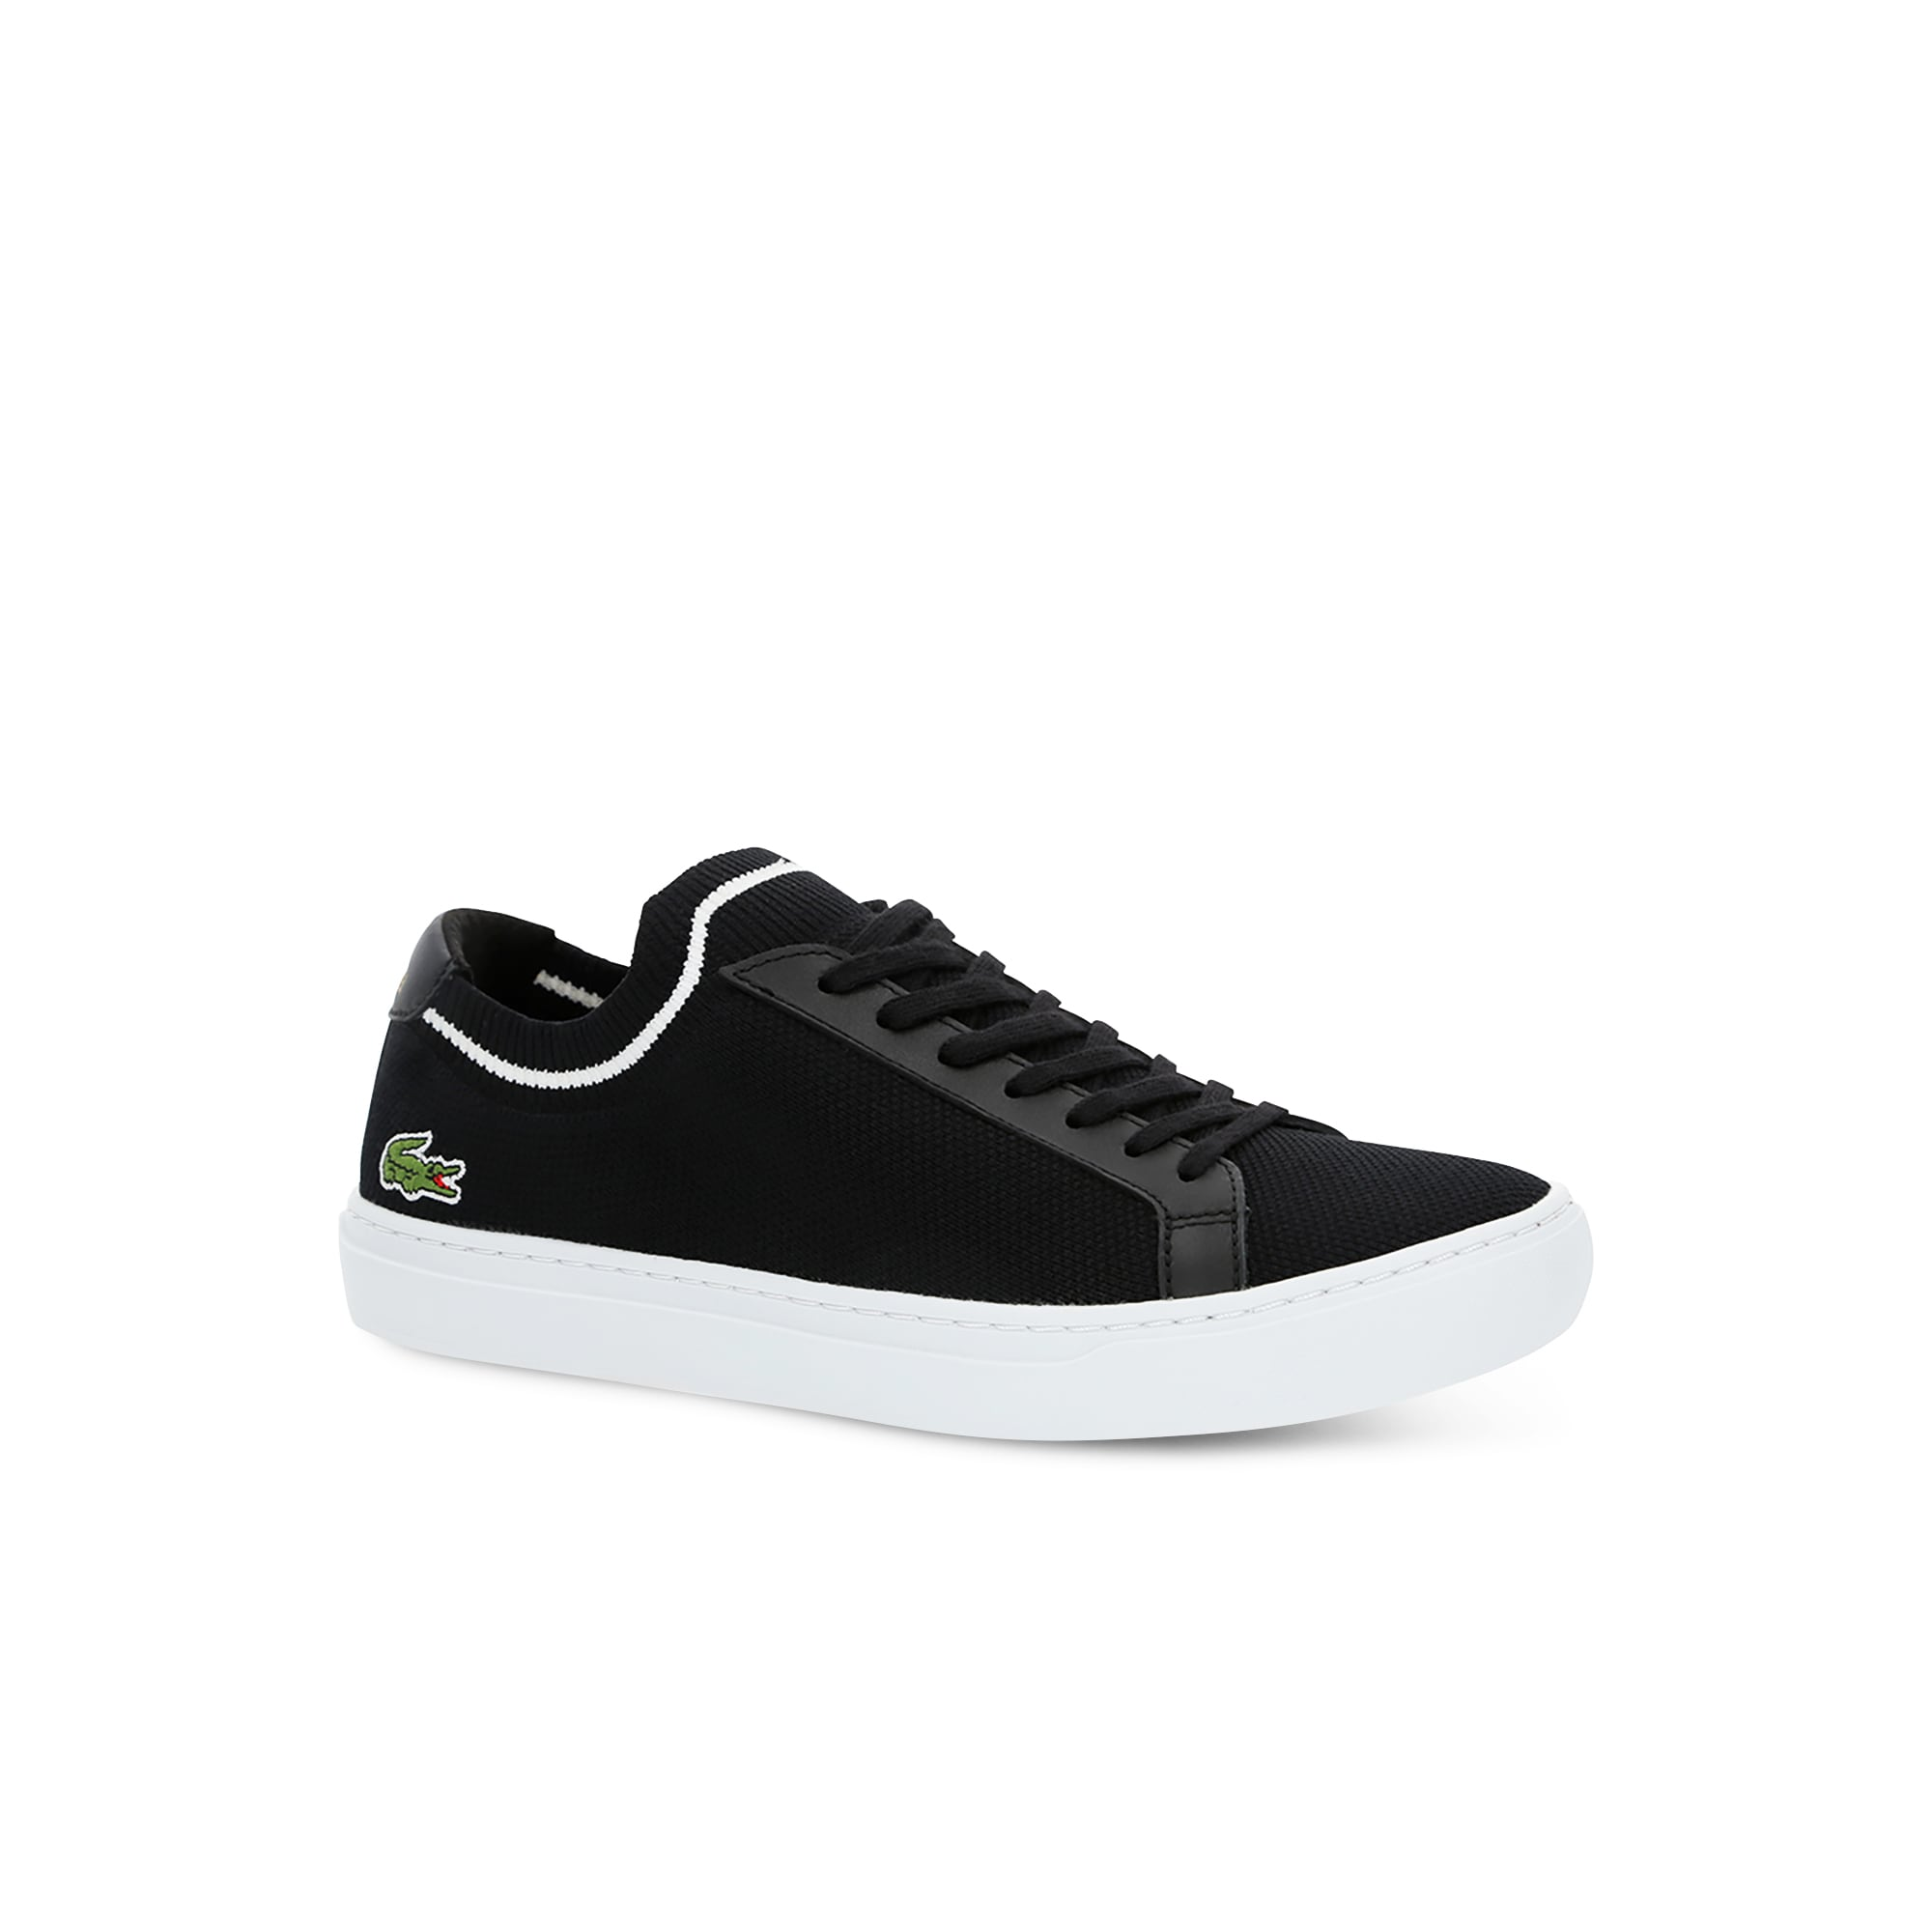 8bd9bf43a0 Chaussures homme | Collection Homme | LACOSTE